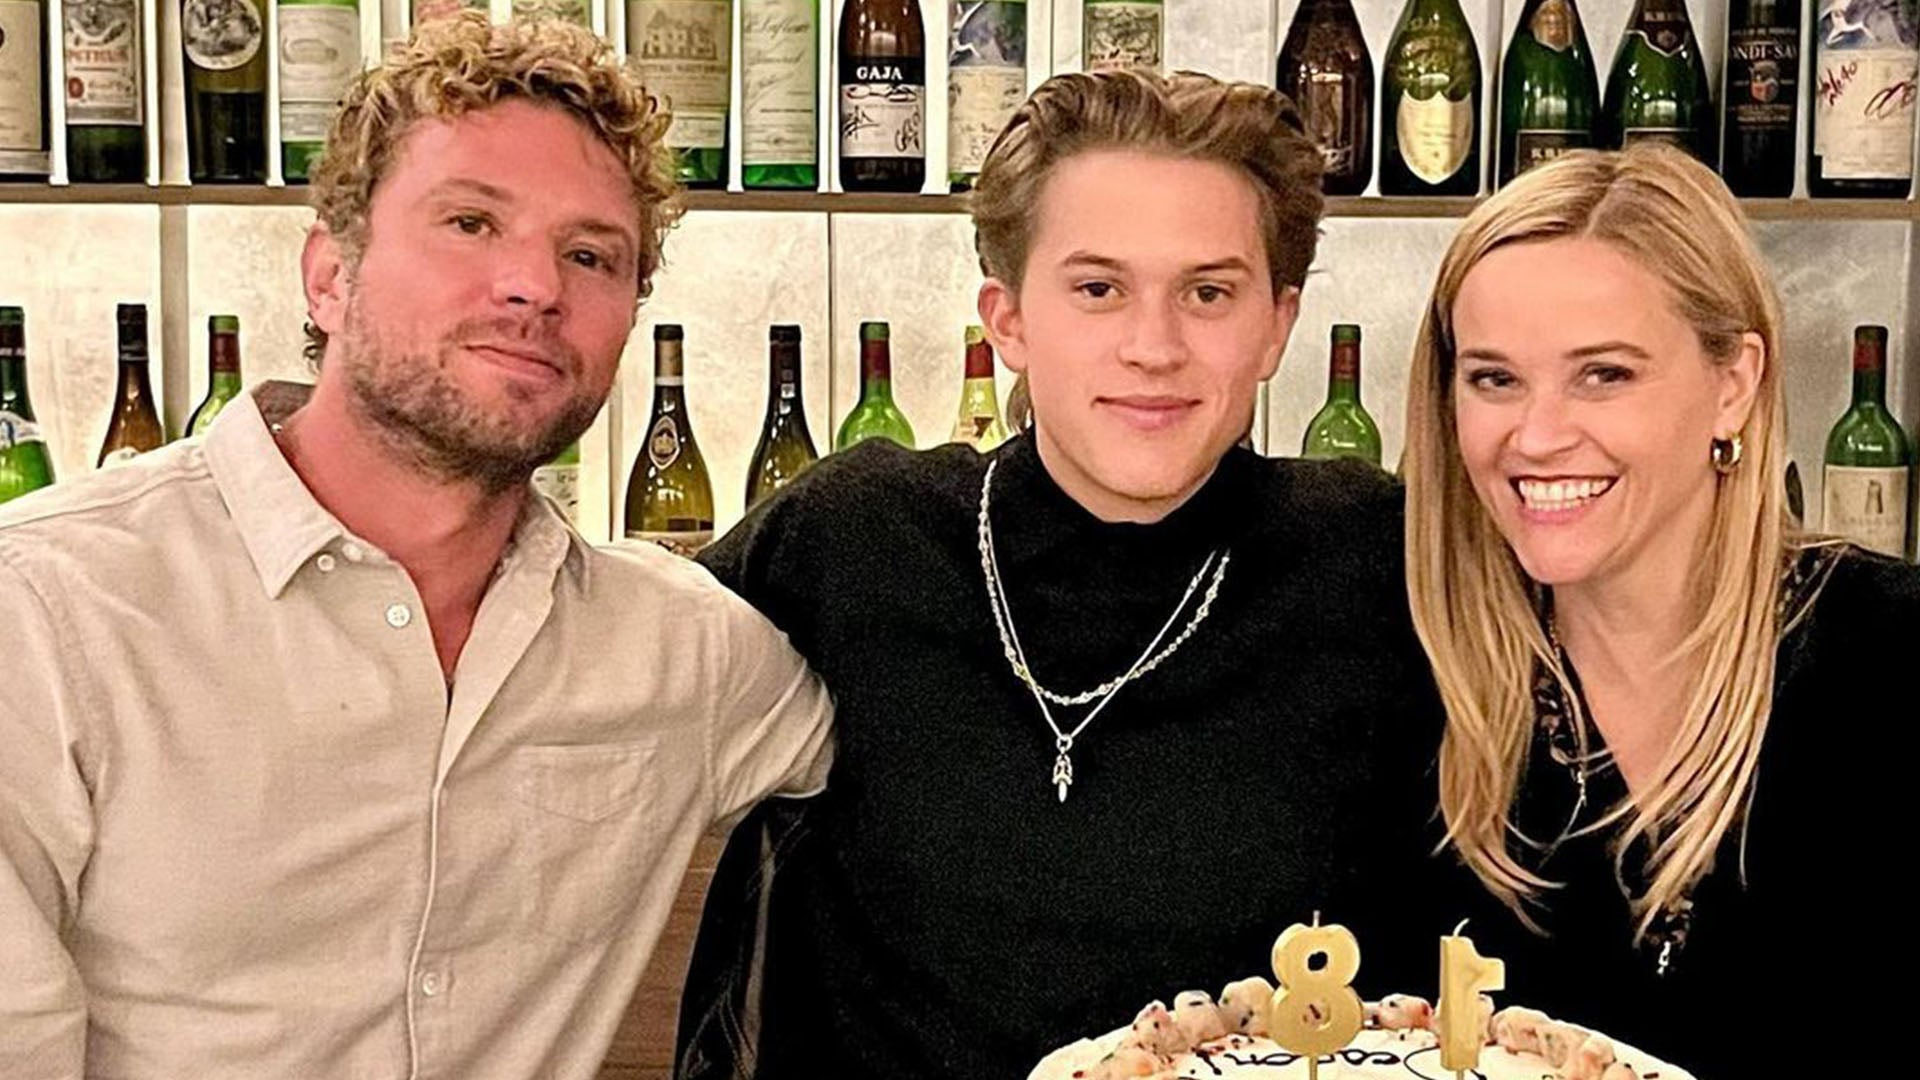 Reese Witherspoon and Ryan Phillippe Reunite for Son Deacon's Birthday!